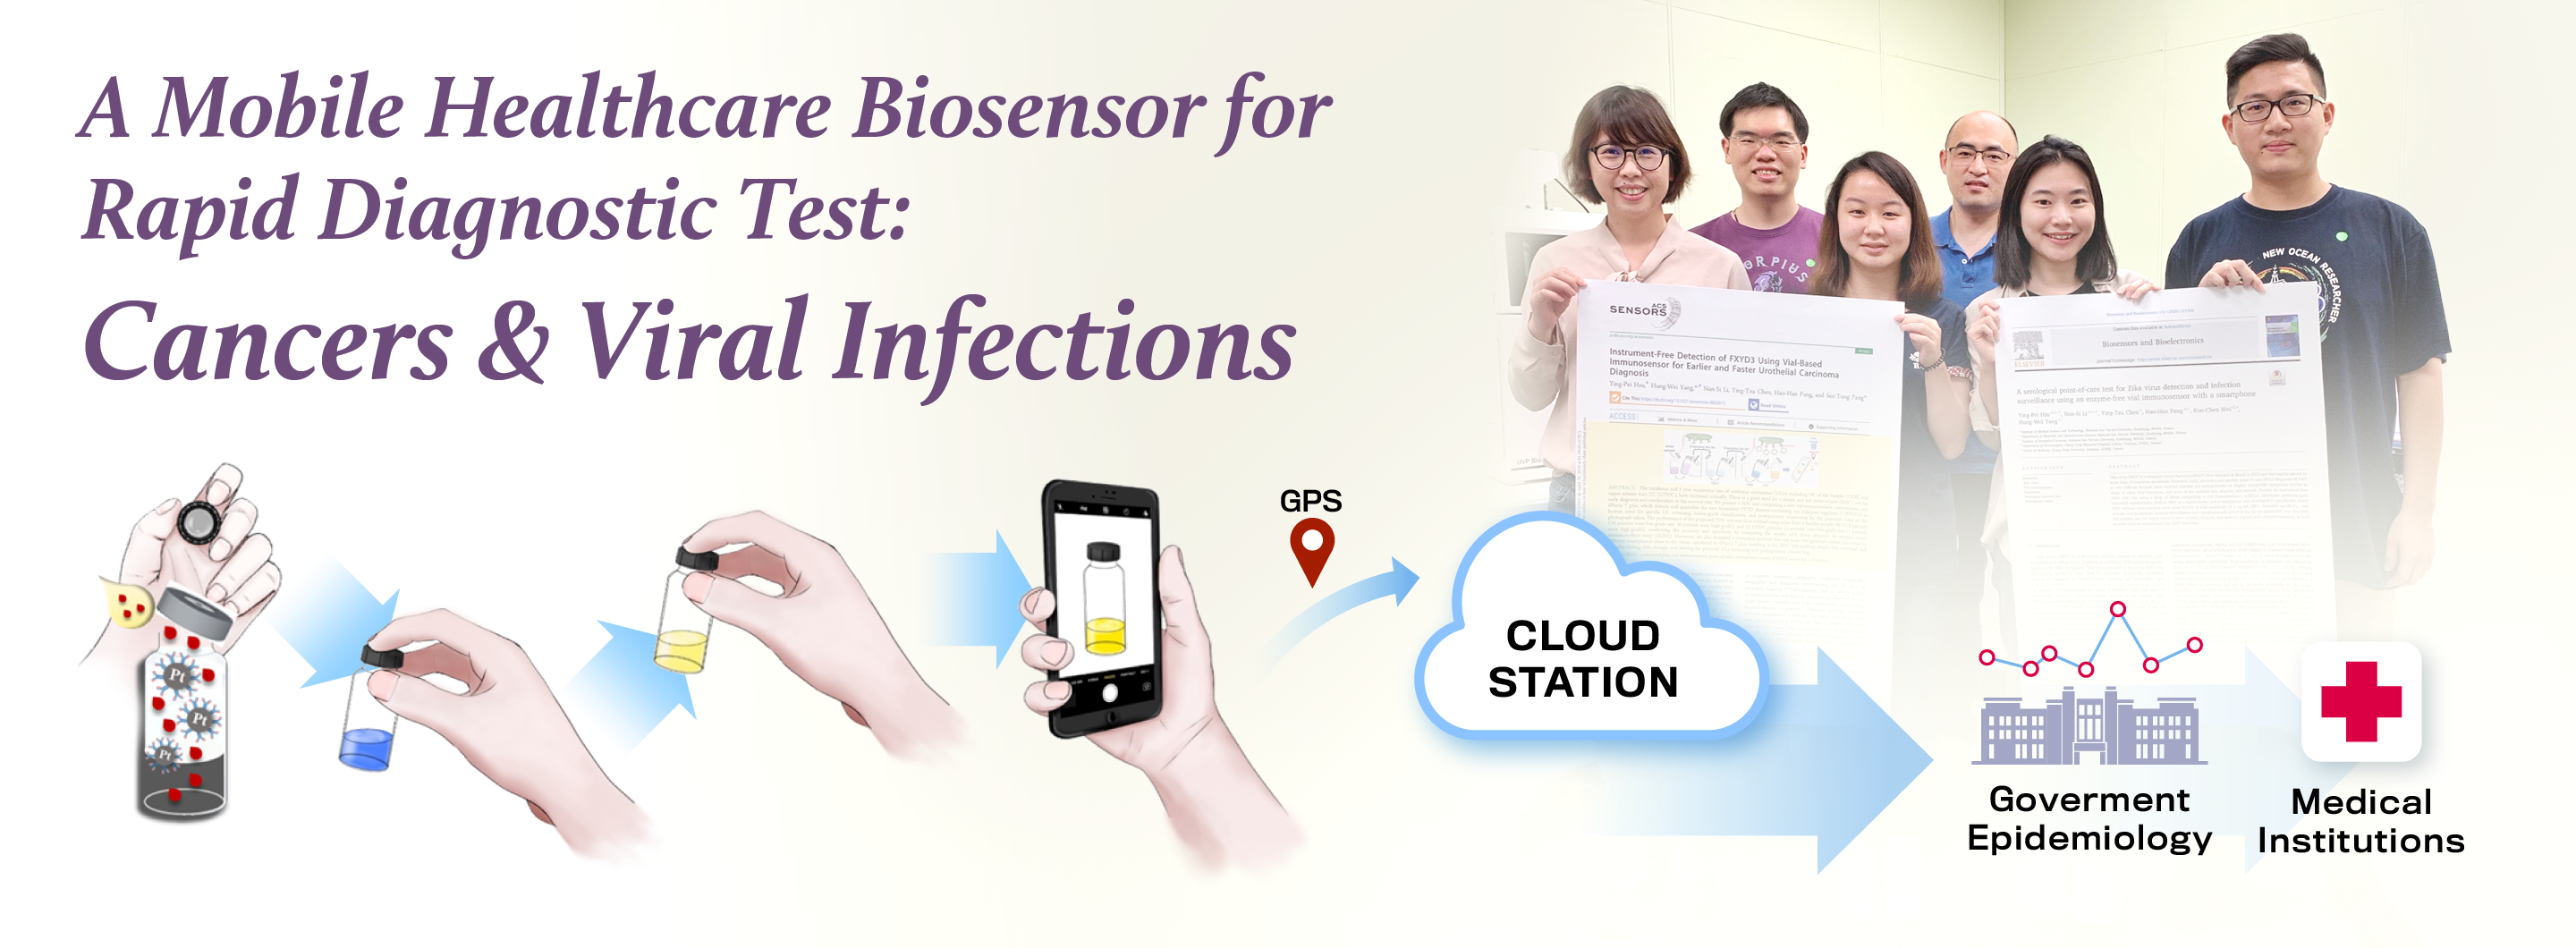 A Mobile Healthcare Biosensor for Rapid Diagnostic Test: Cancers and Viral Infections